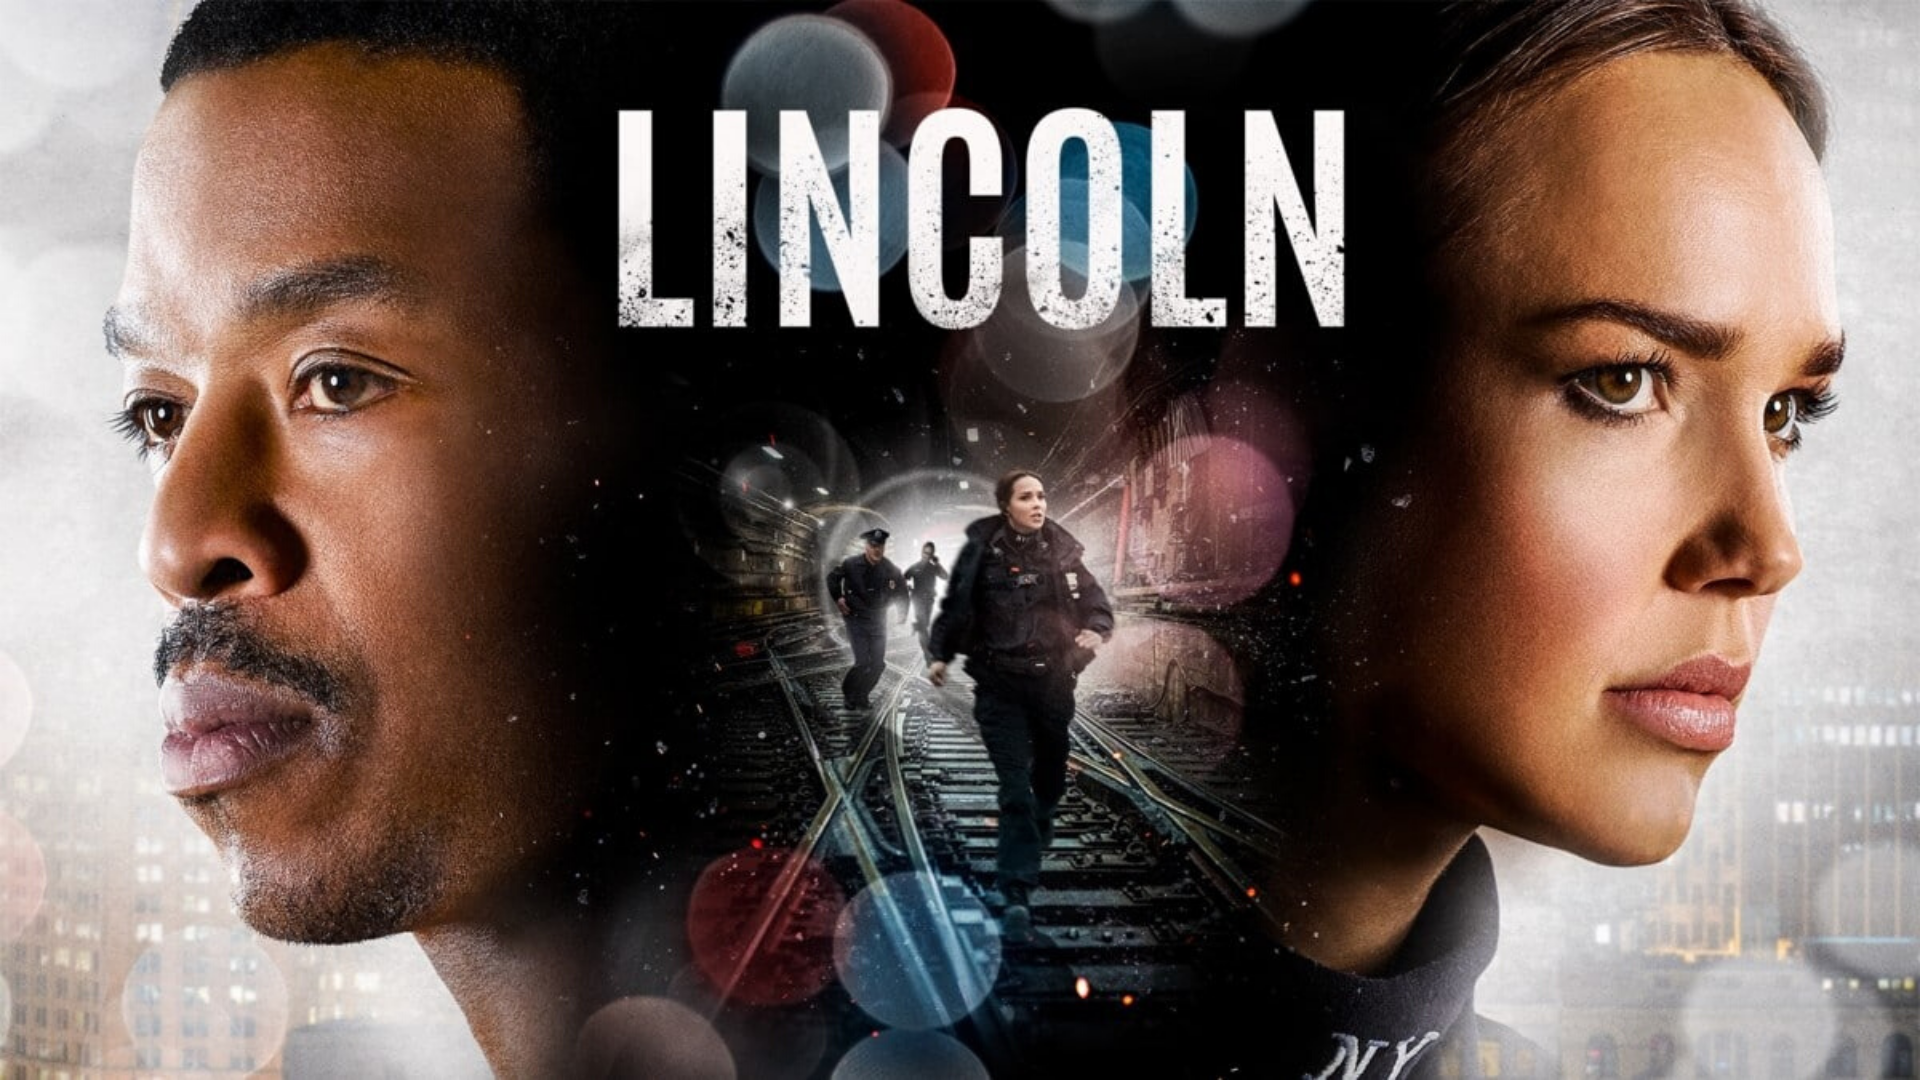 Critique « Lincoln : A La Poursuite du Bone Collector » (2020) : La chasse à l'os reprend !